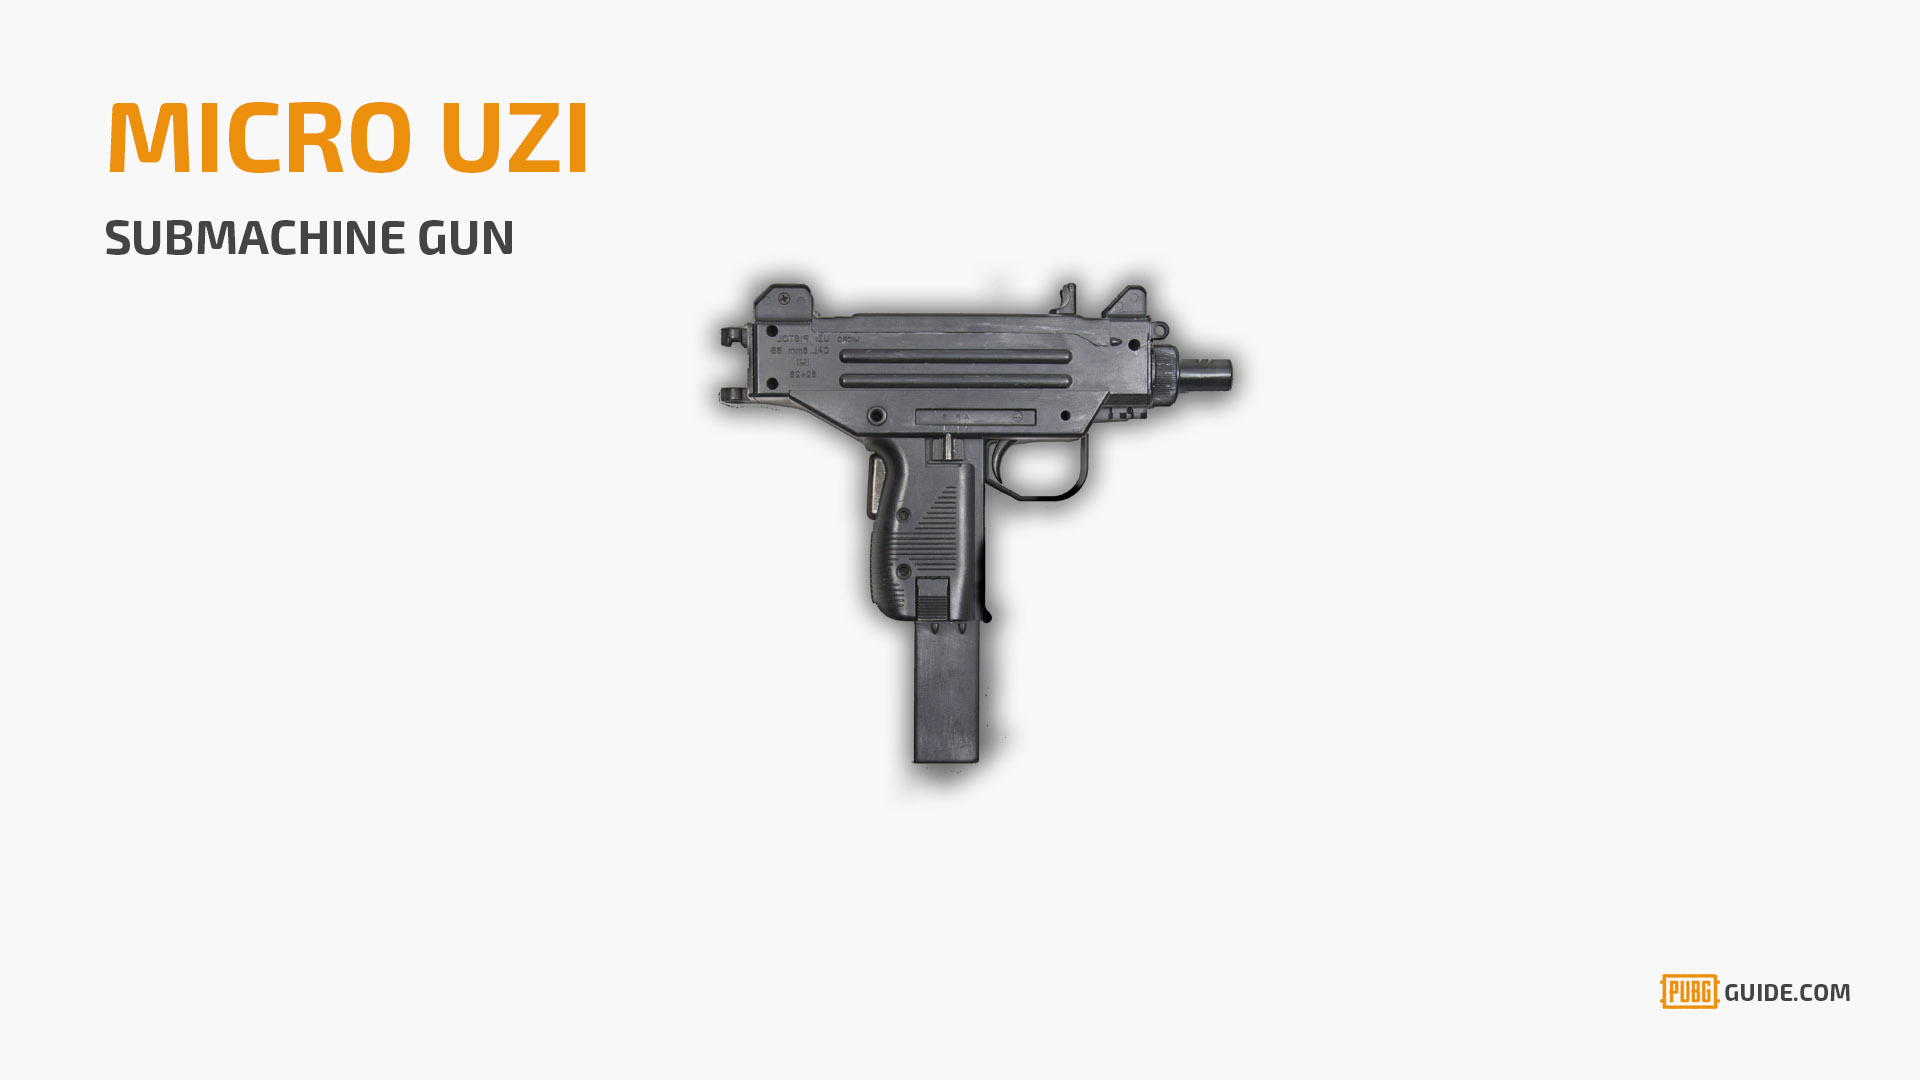 pubg_weapon_Micro_UZI_1